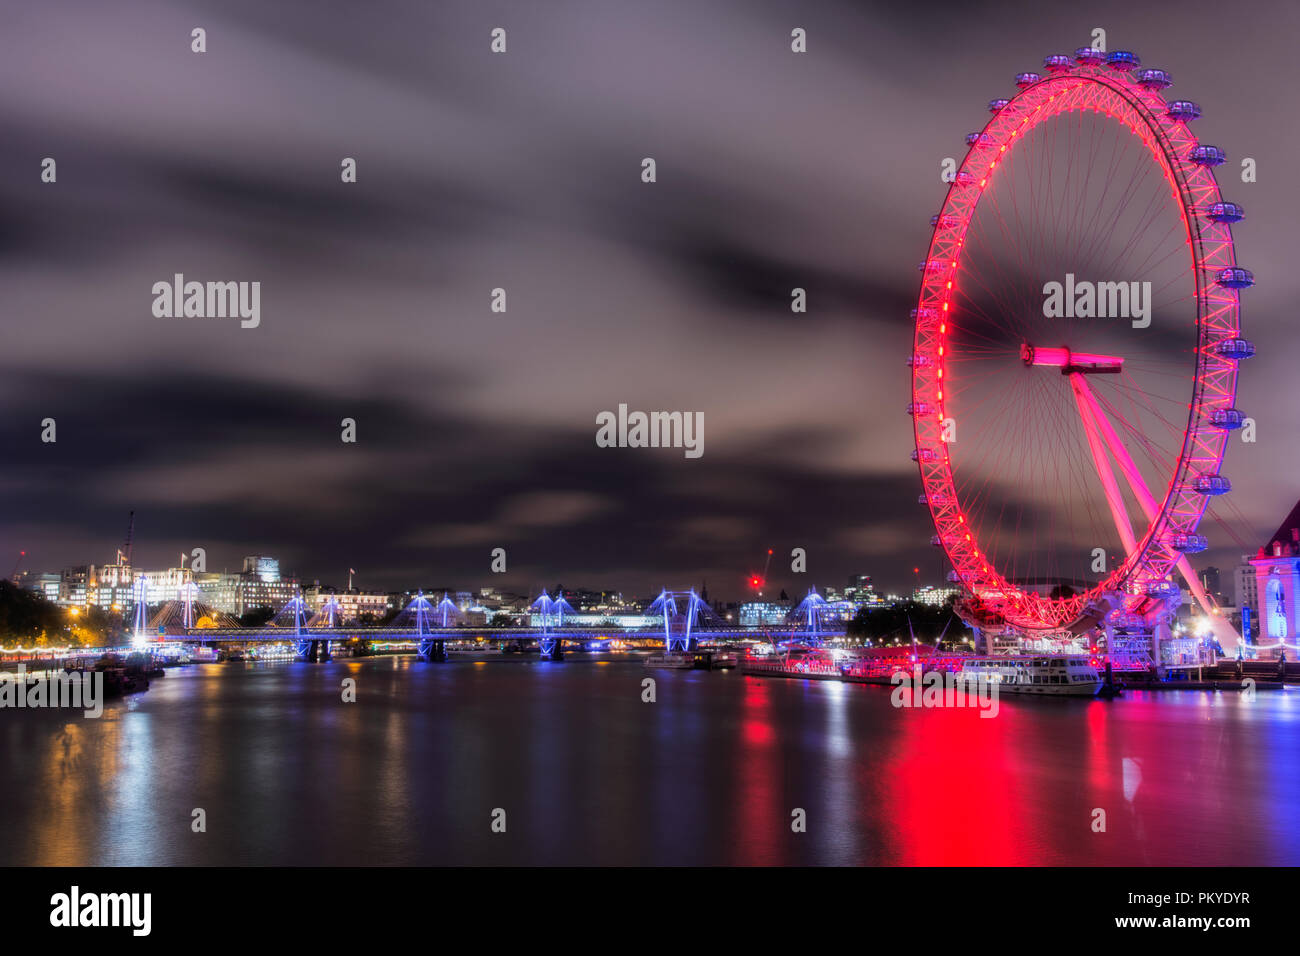 London Eye Stockbild